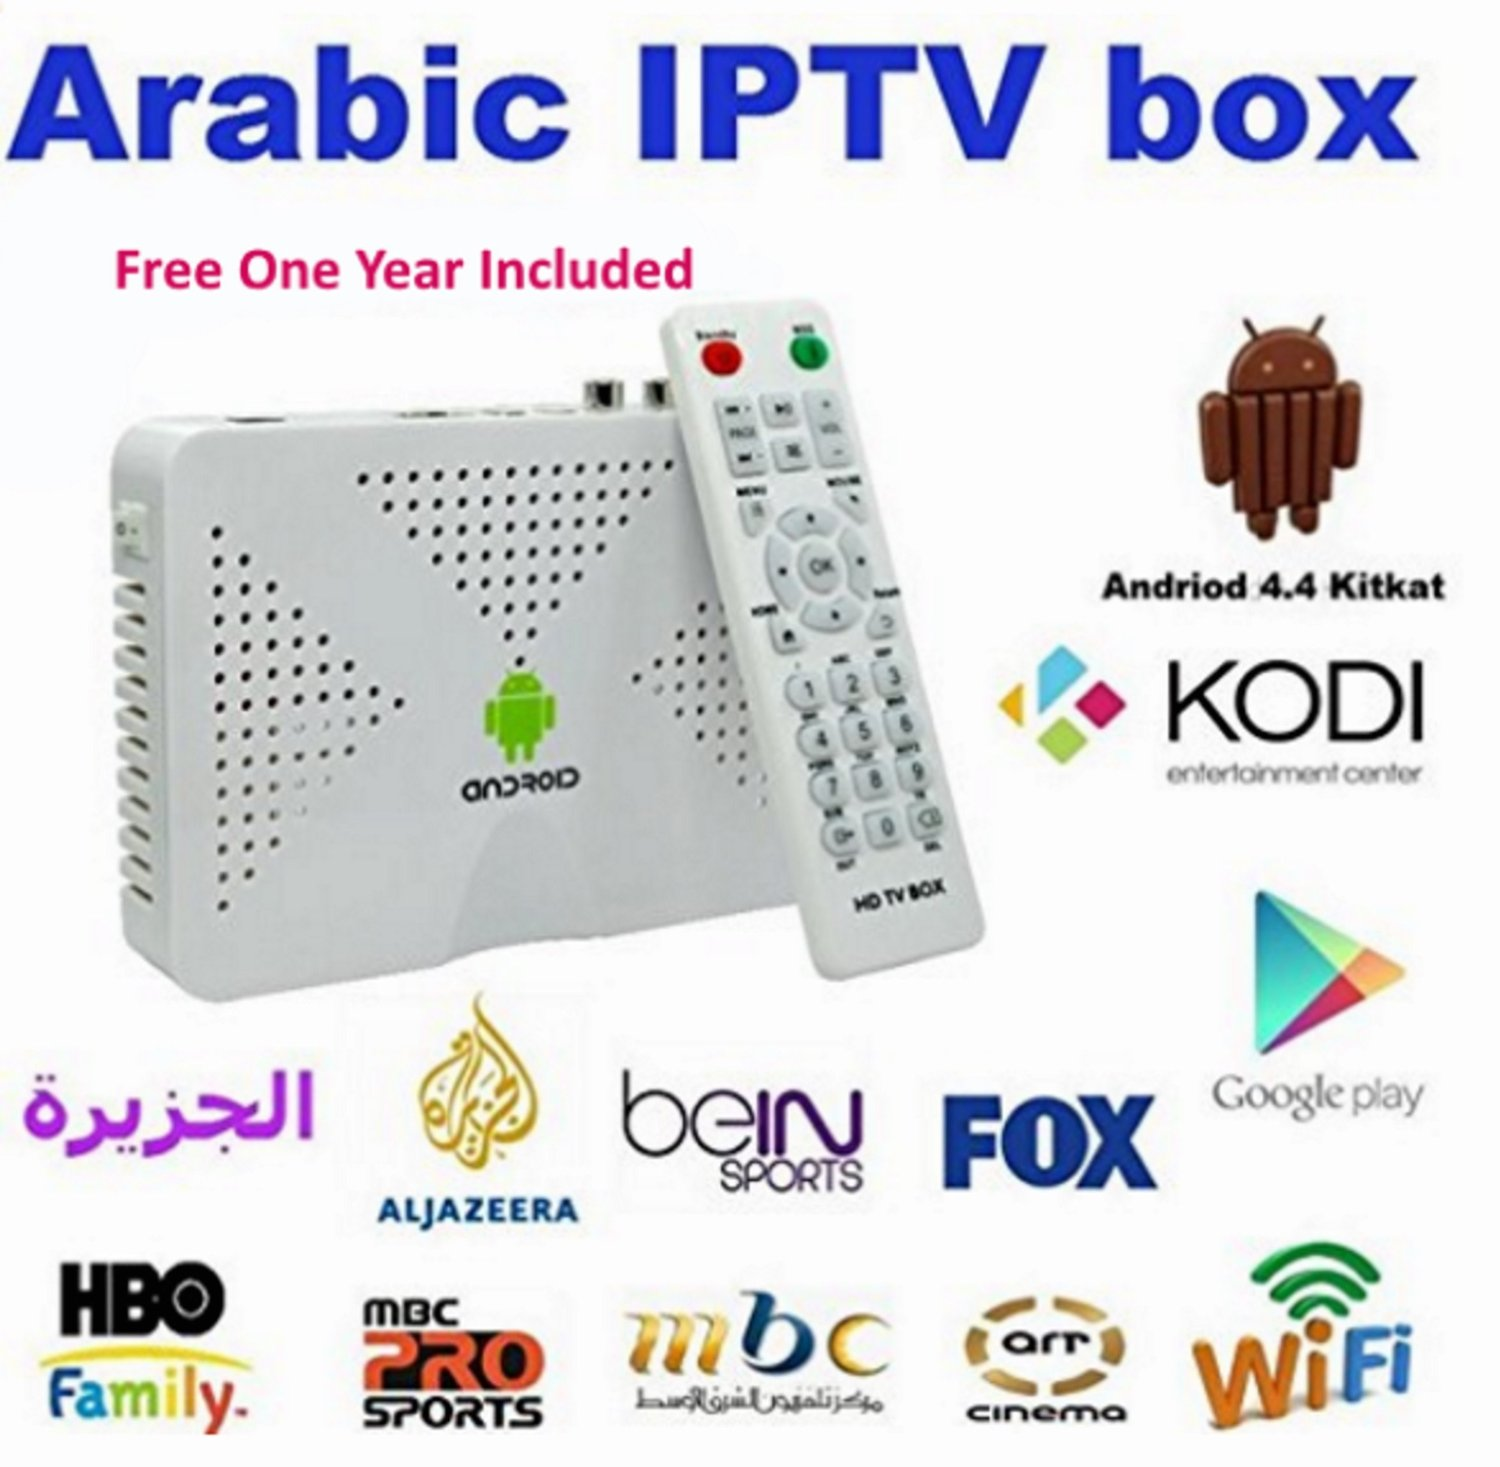 Buy Quad Core S805 Android Tv Box Arabic Iptv Account for 2 Year Box